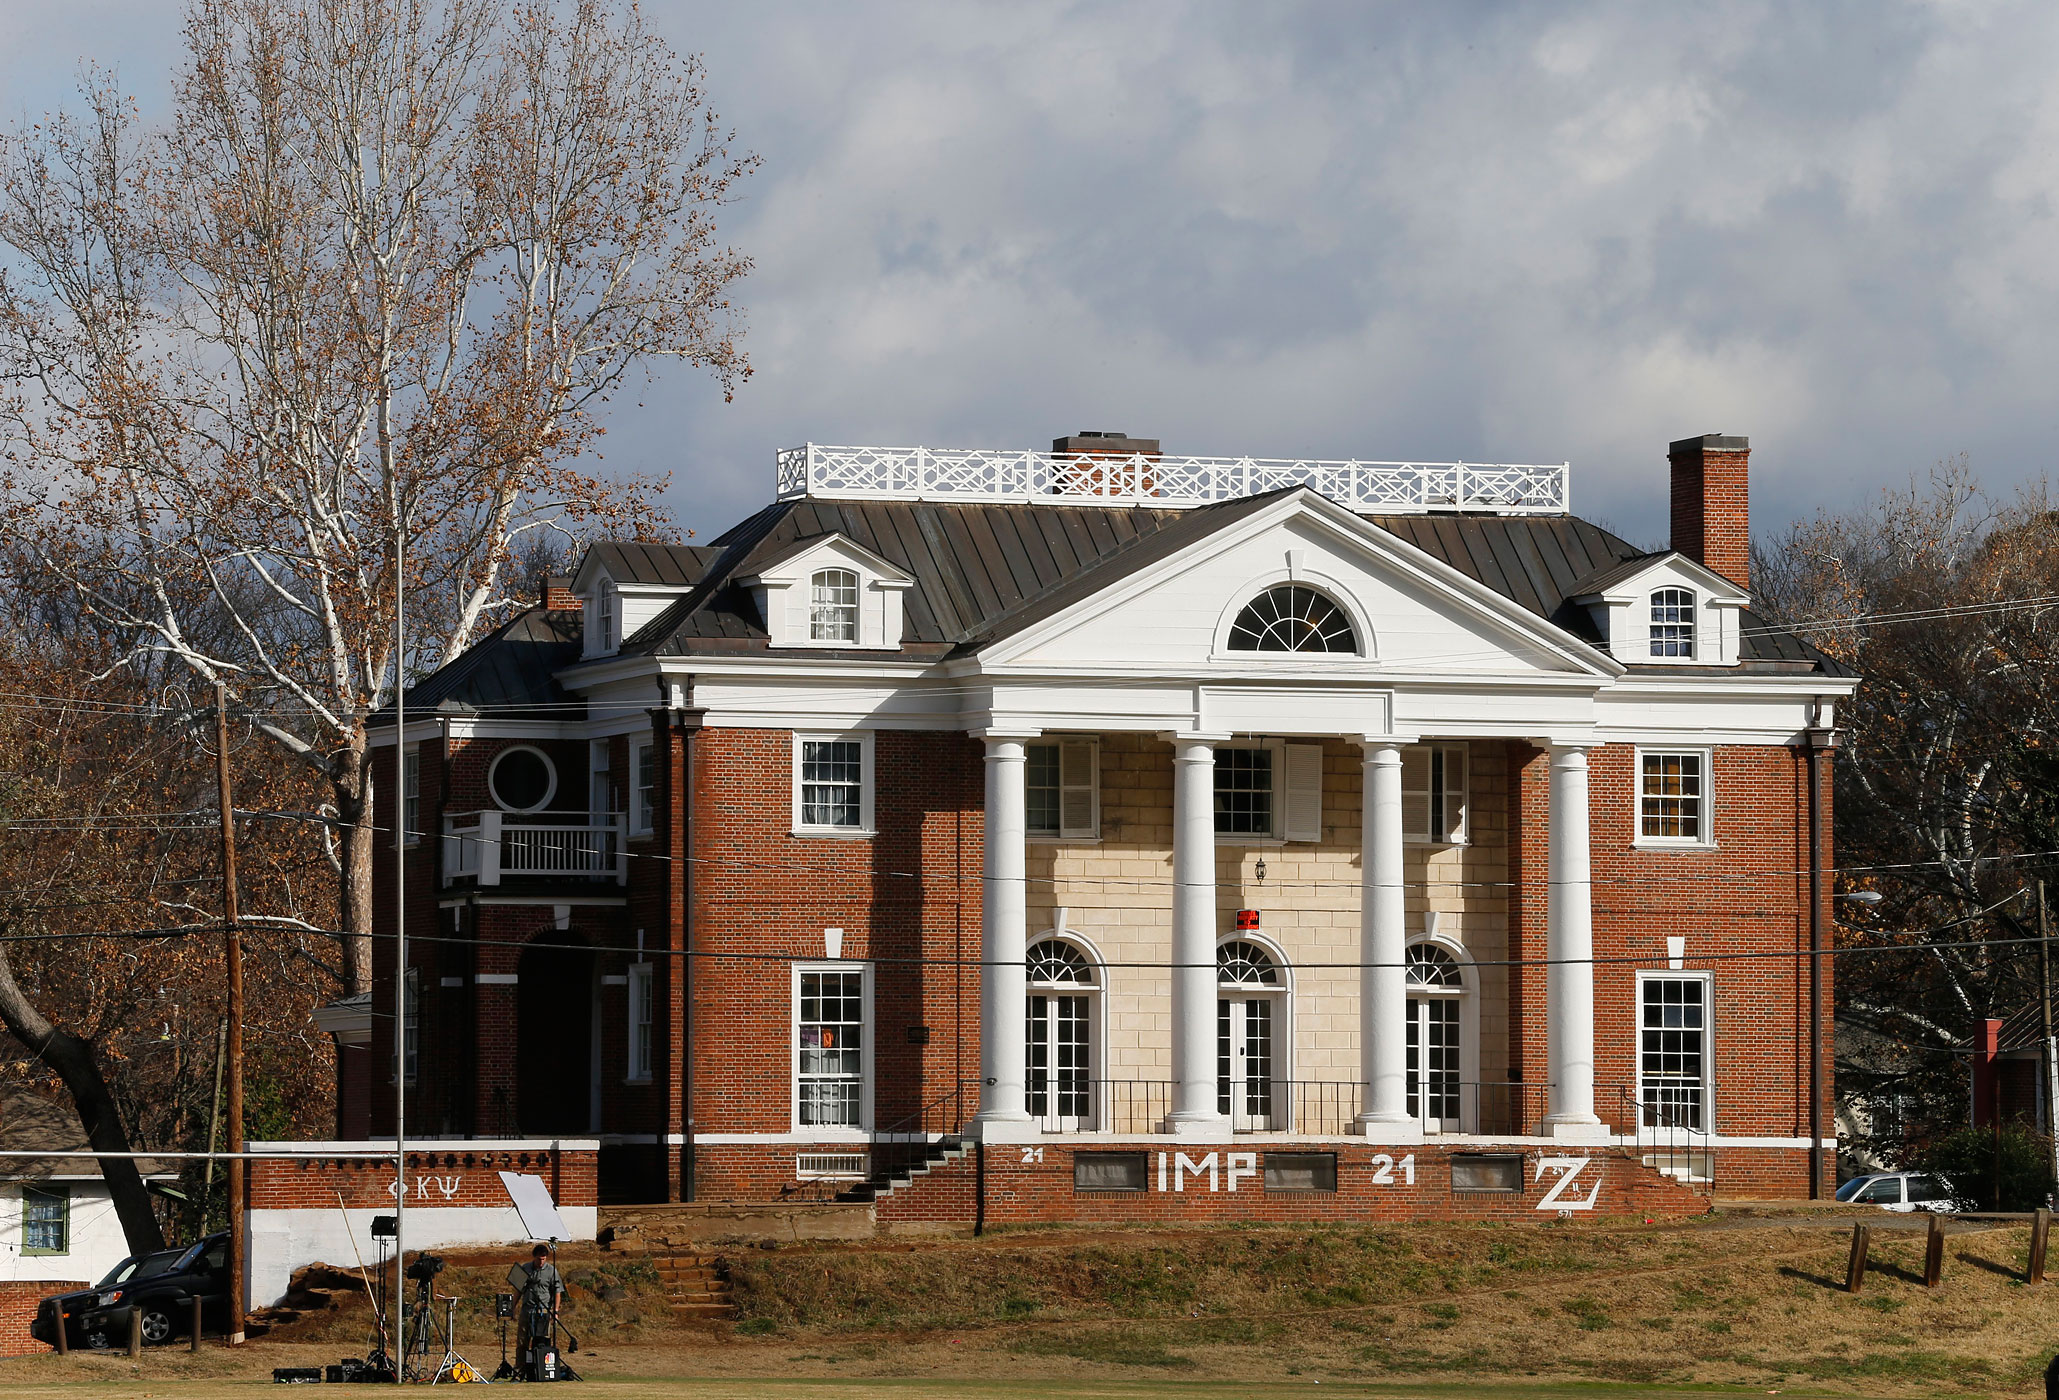 The Phi Kappa Psi fraternity house at the University of Virginia in Charlottesville, Va., on Nov. 24, 2014.